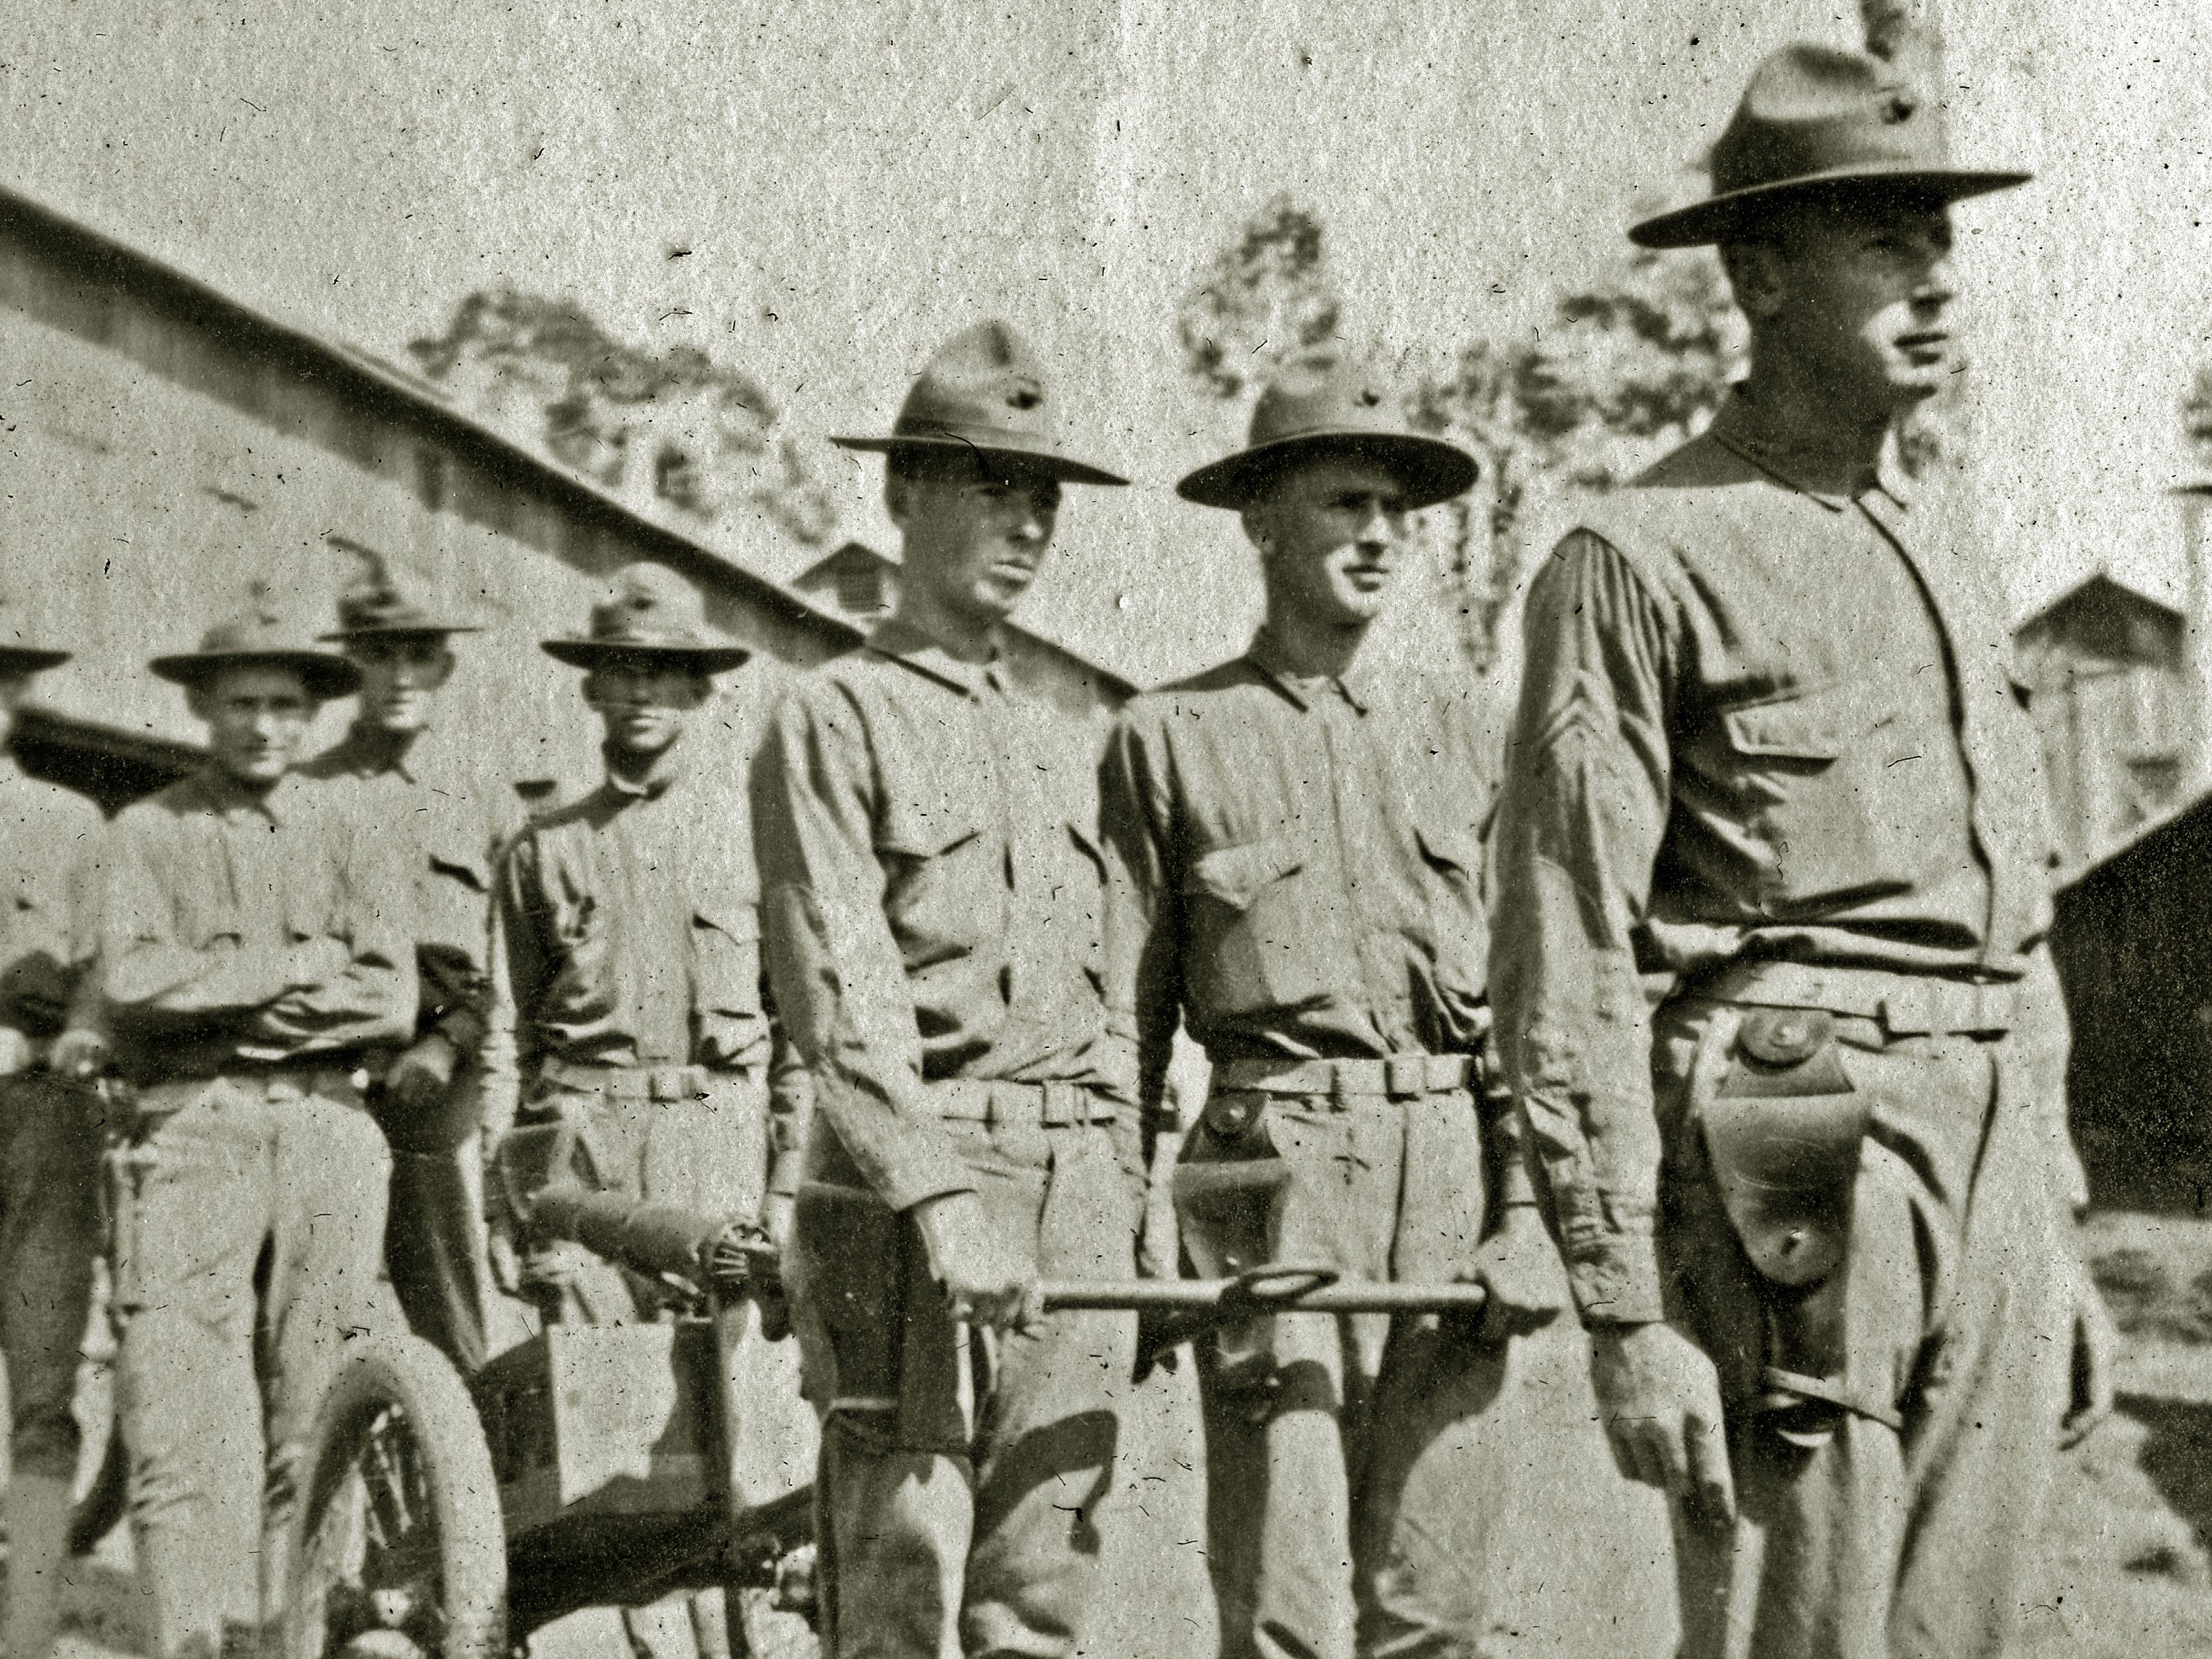 Harold Reilly (third from right) left Marquette University in May 1917 to enlist in the U.S. Marines where he was assigned to the 81st Co., 6th Machine Gun Battalion. His unit arrived in France on Dec. 28, 1917. In September 1918, he was wounded and hospitalized until Oct. 31 and returned to his unit. On Nov. 2 Reilly died by artillery, nine days before the end of World War 1. Reilly's parents did not learn of their loss until Nov. 20.